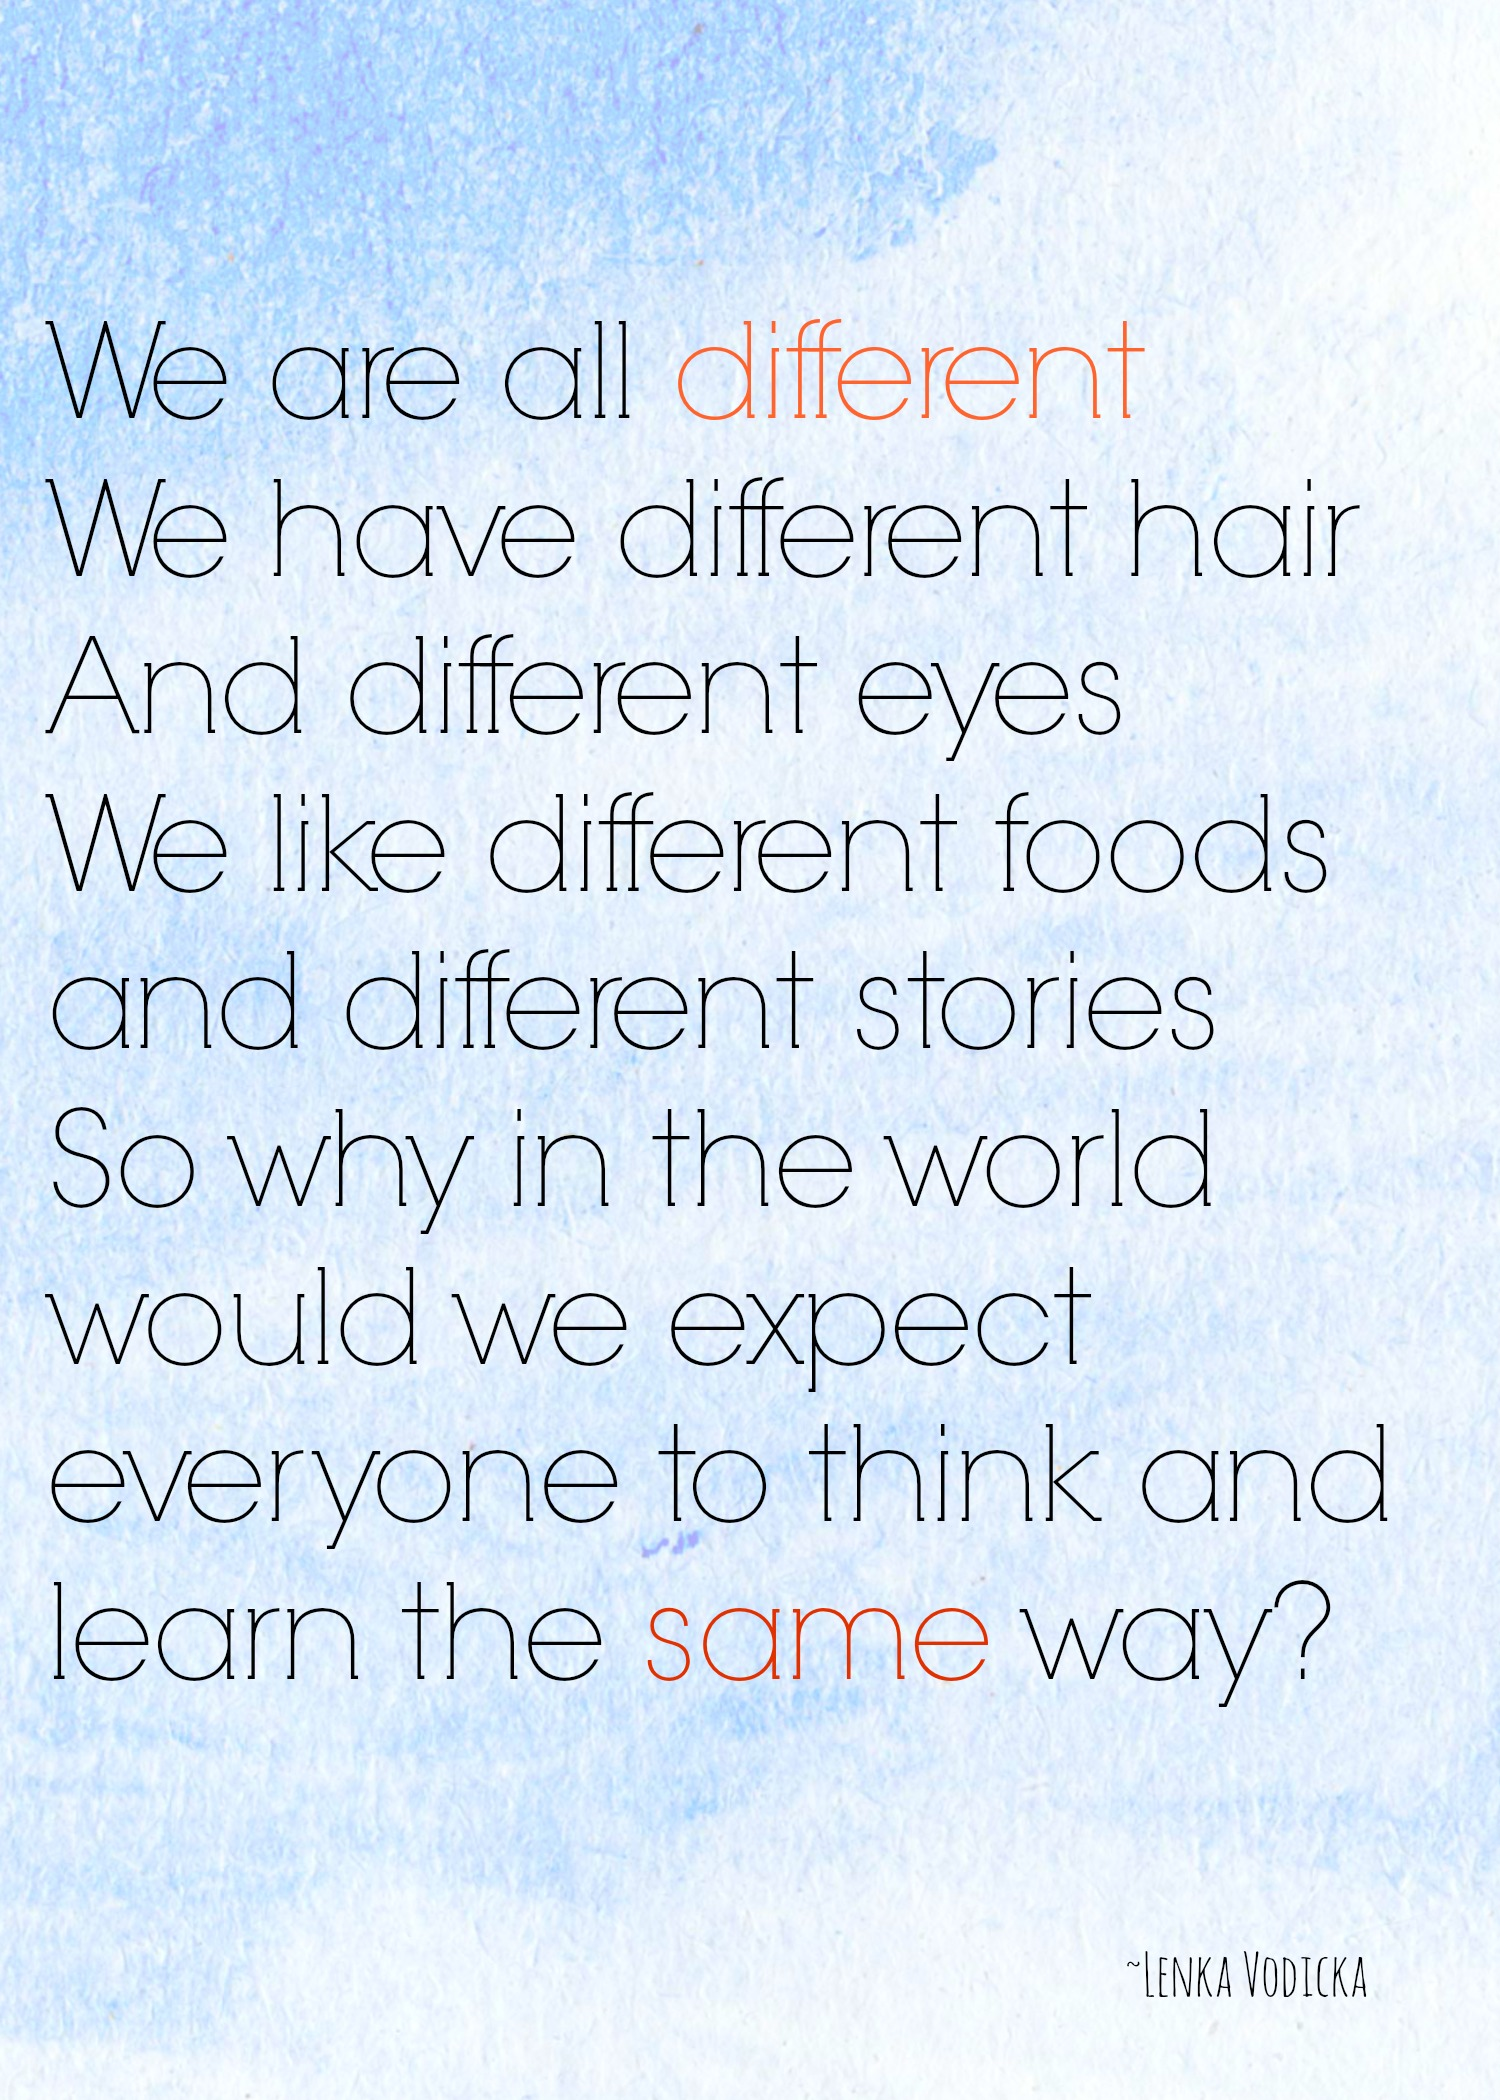 DifferentLearners